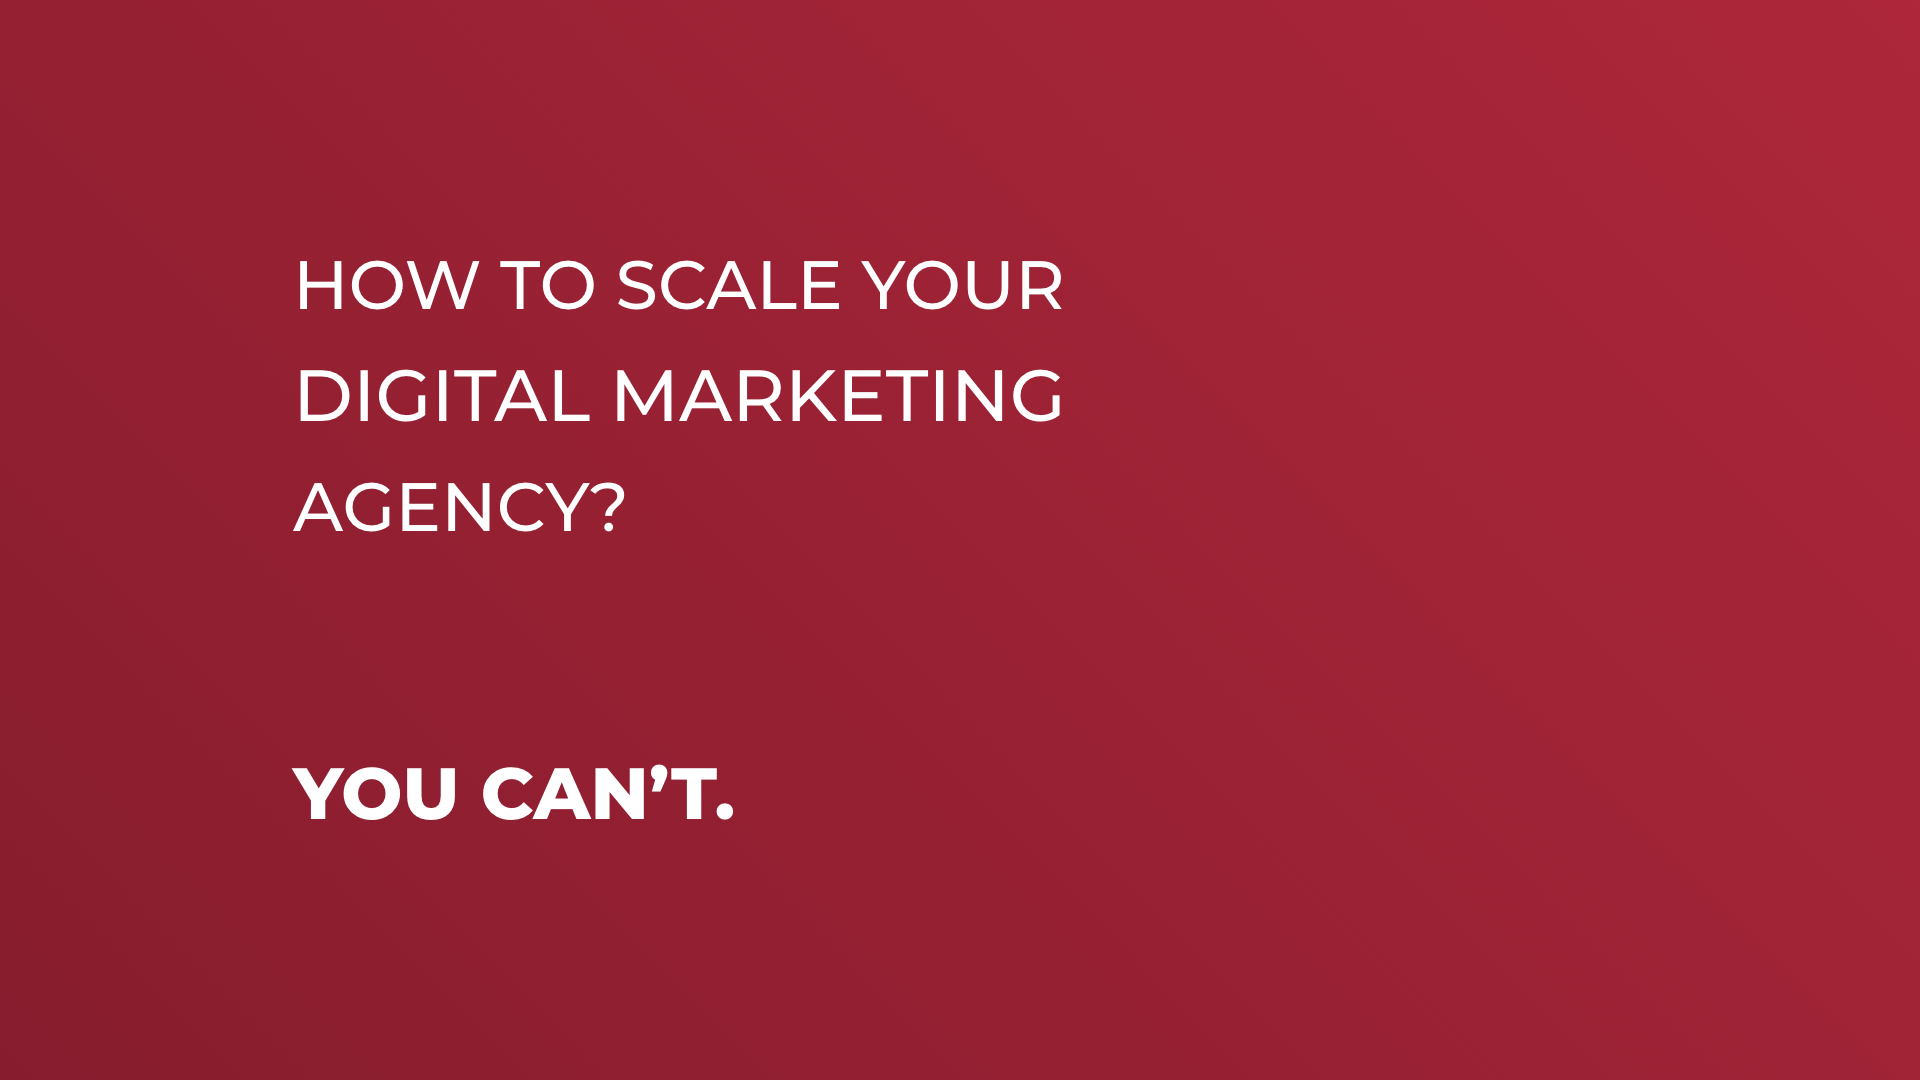 Scale Your Digital Marketing Agency